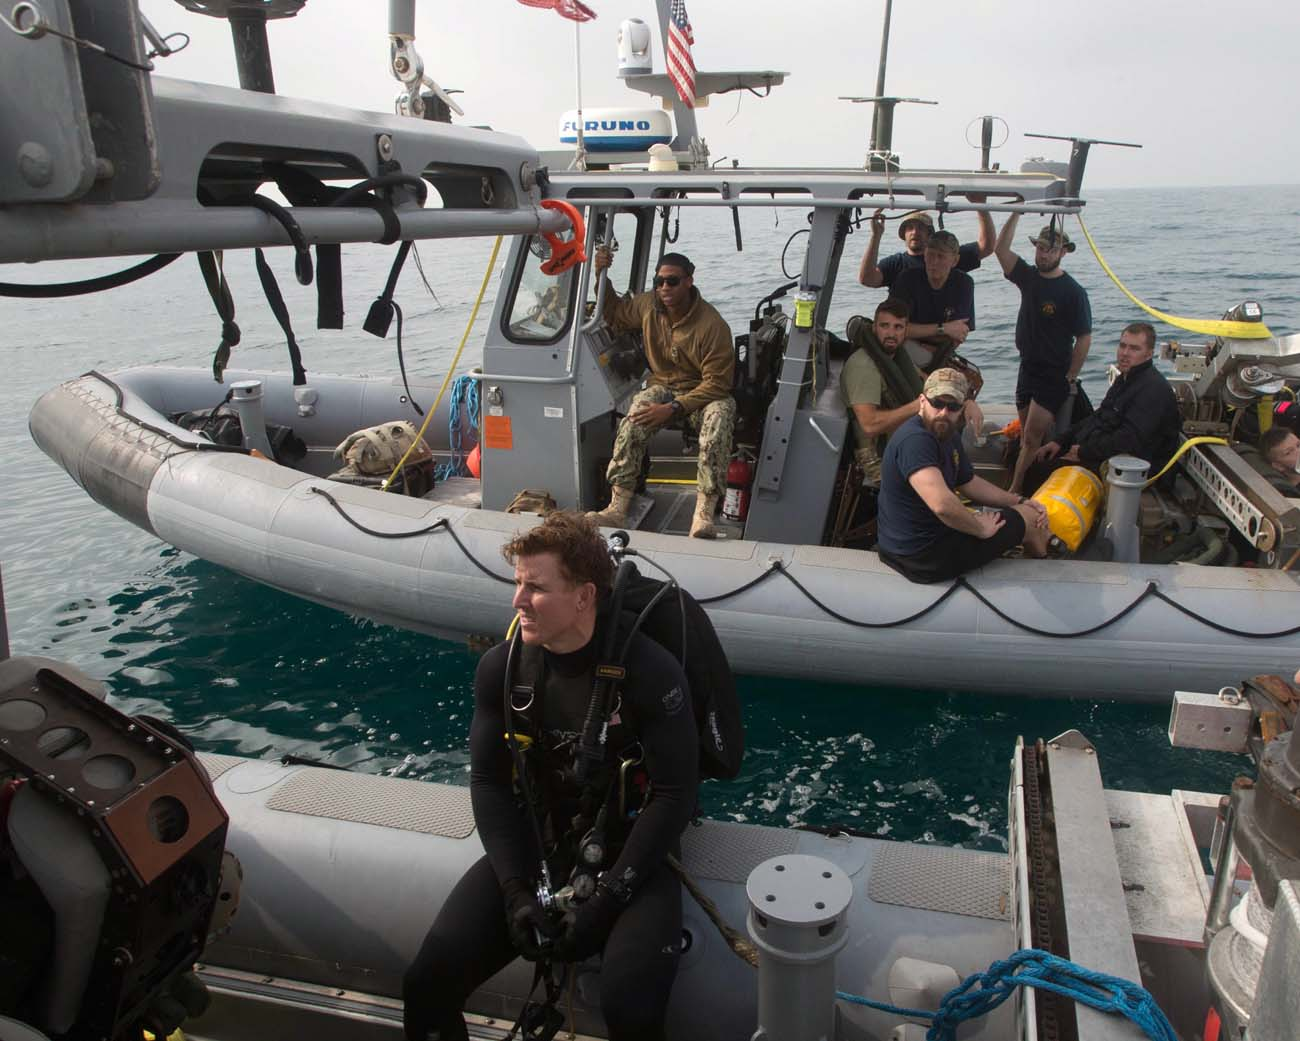 Divers hunt mines in joint US-UK exercise